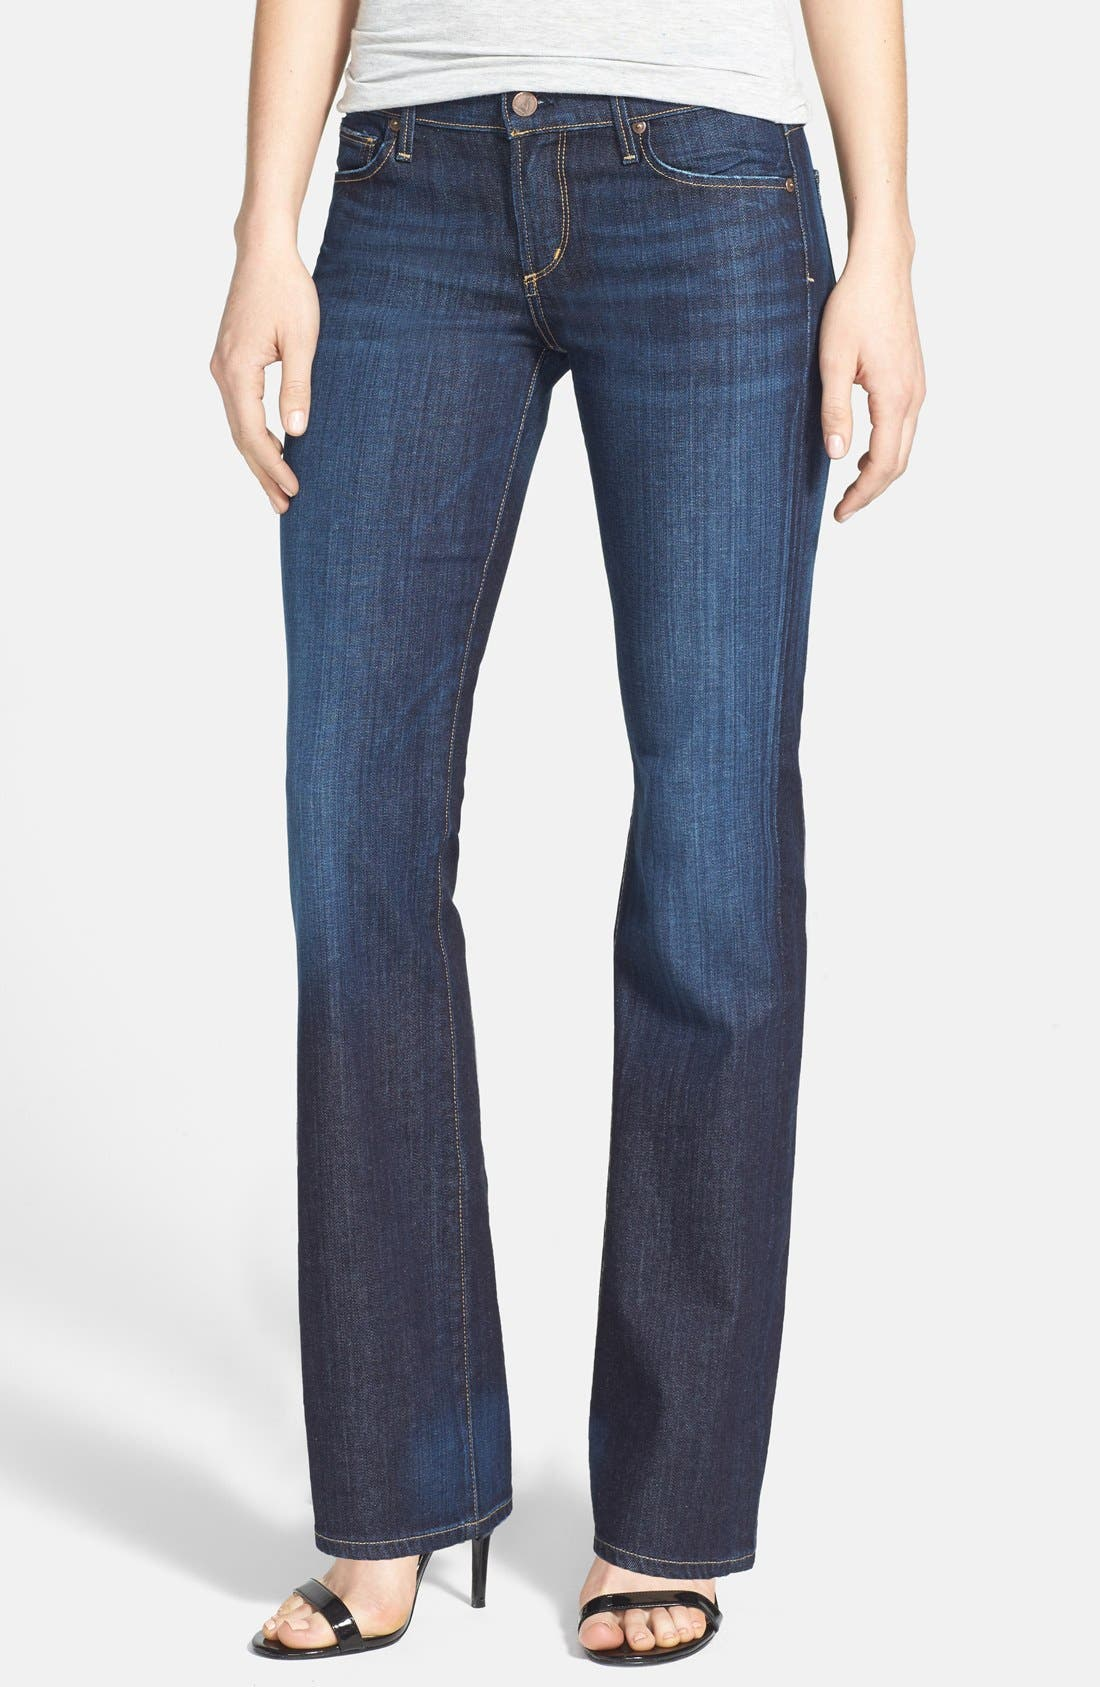 Alternate Image 1 Selected - Citizens of Humanity 'Dita' Bootcut Stretch Jeans (New Pacific) (Petite)